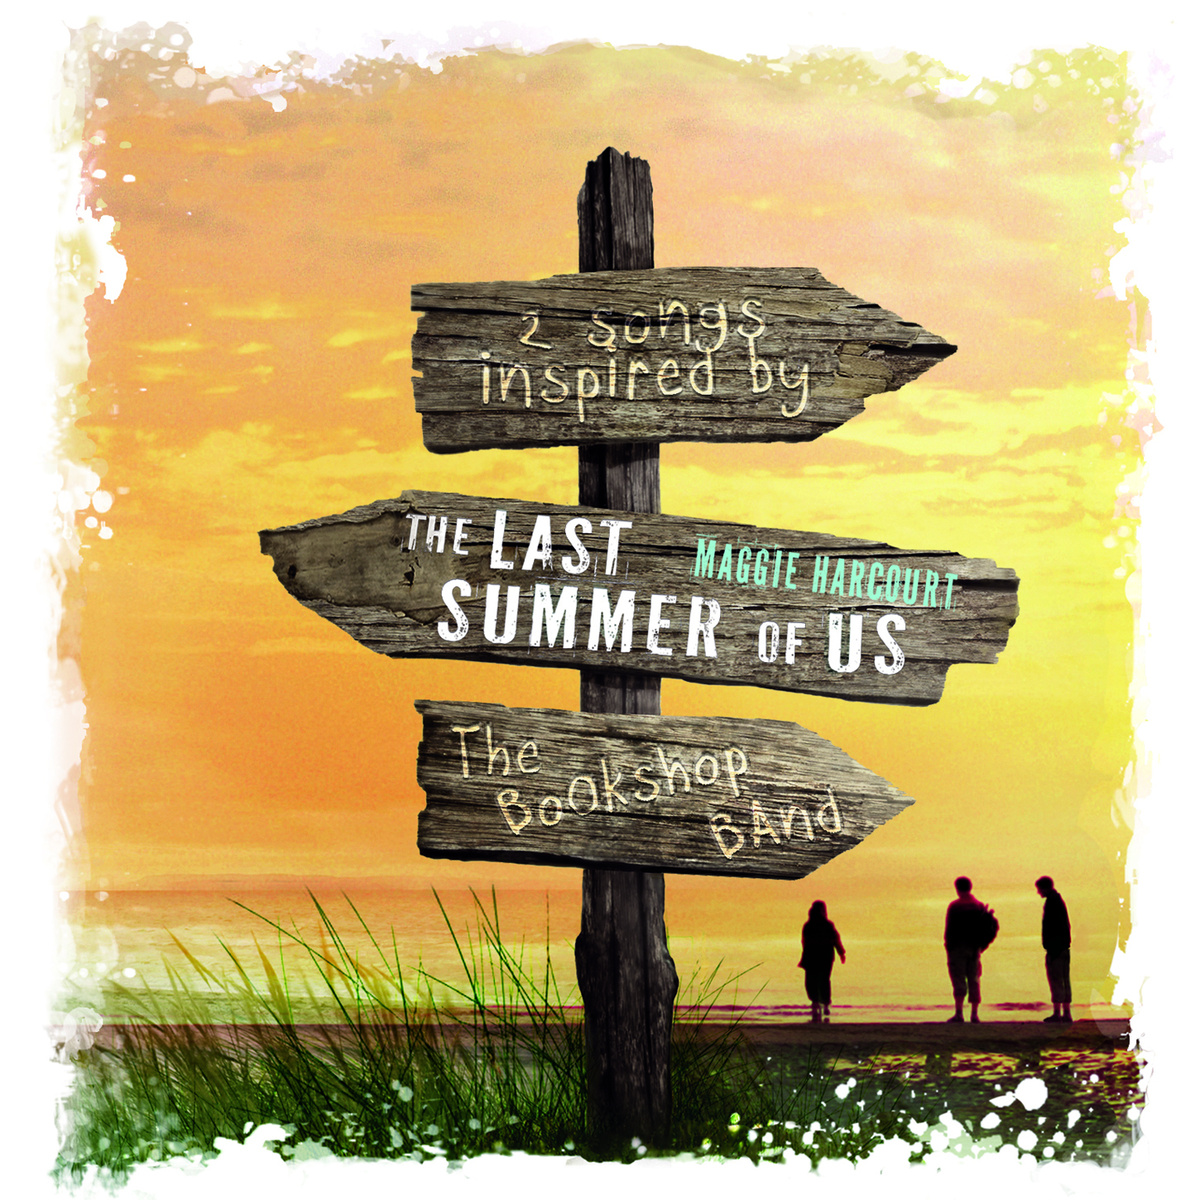 Artist:  The Bookshop Band   Title:  The Last Summer of Us   Credit:  Mastering   Year:  2015